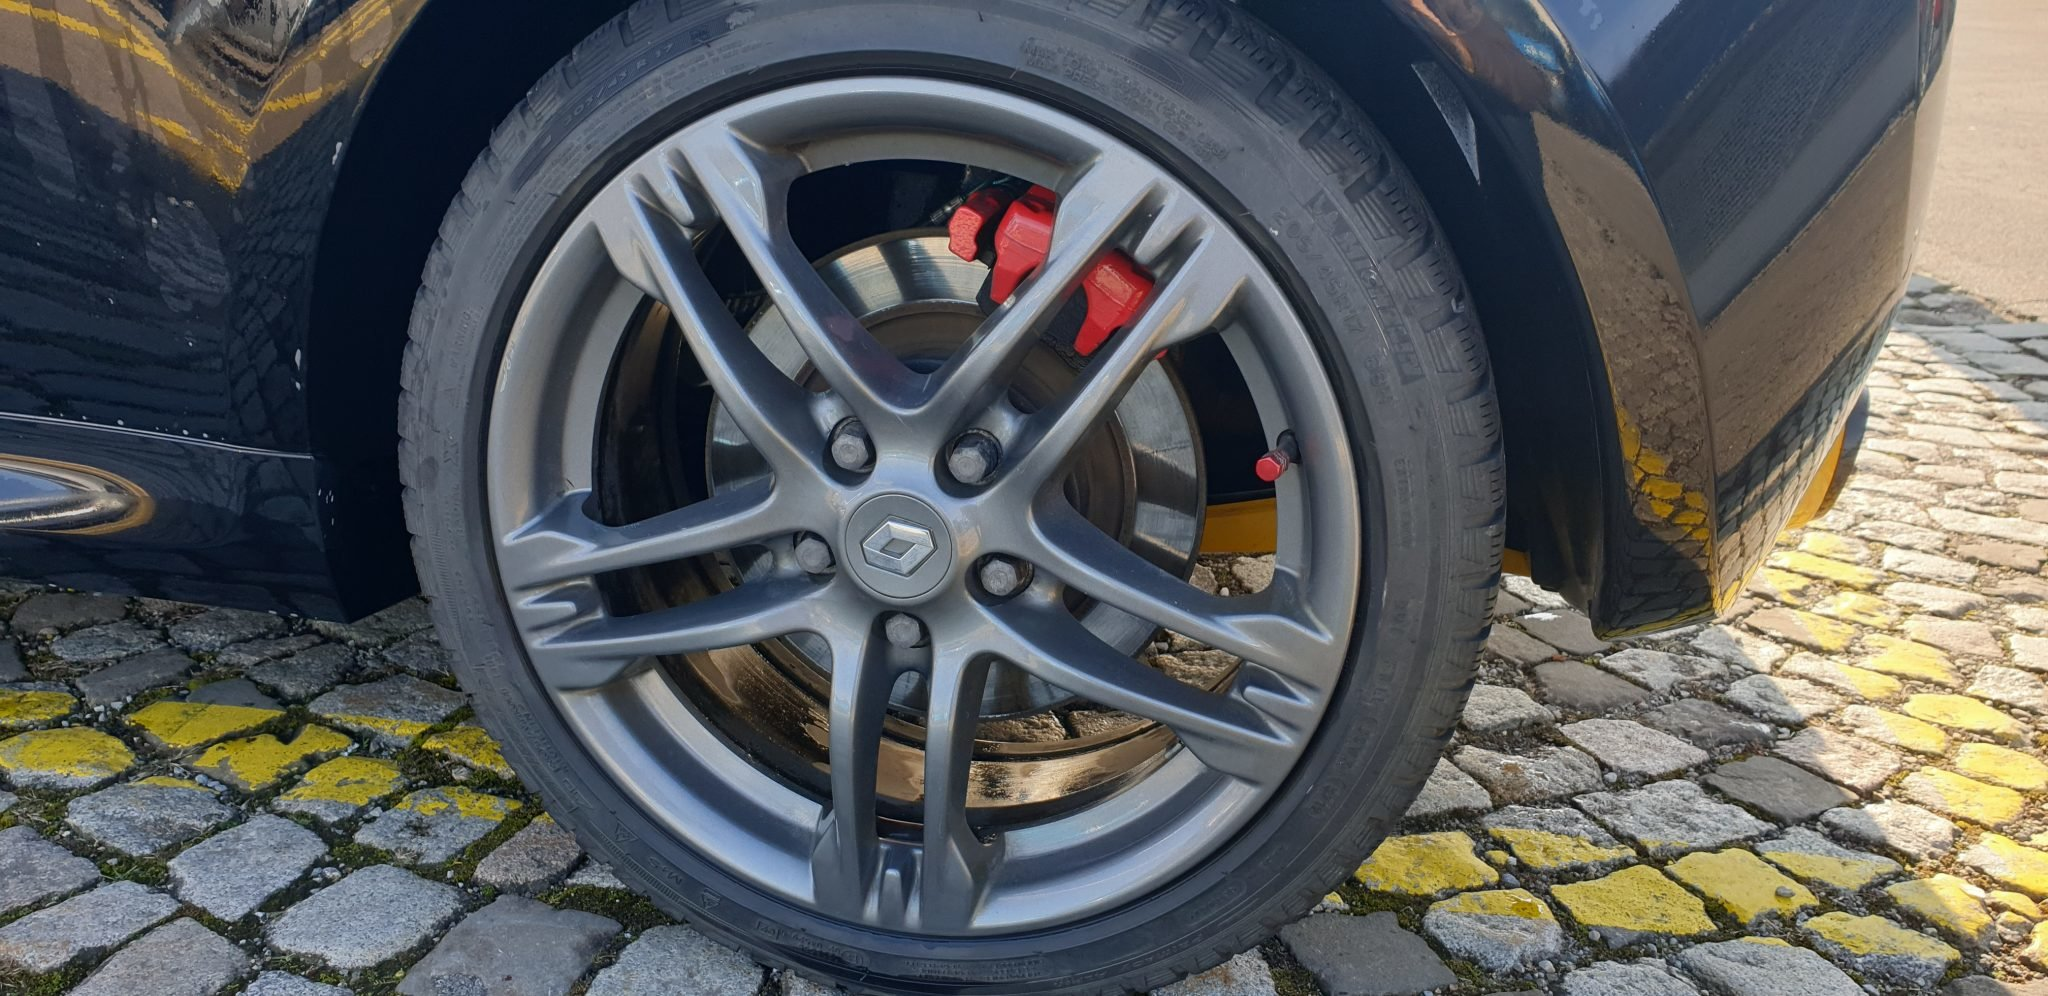 2012 Renault Clio For Sale (picture 4 of 6)